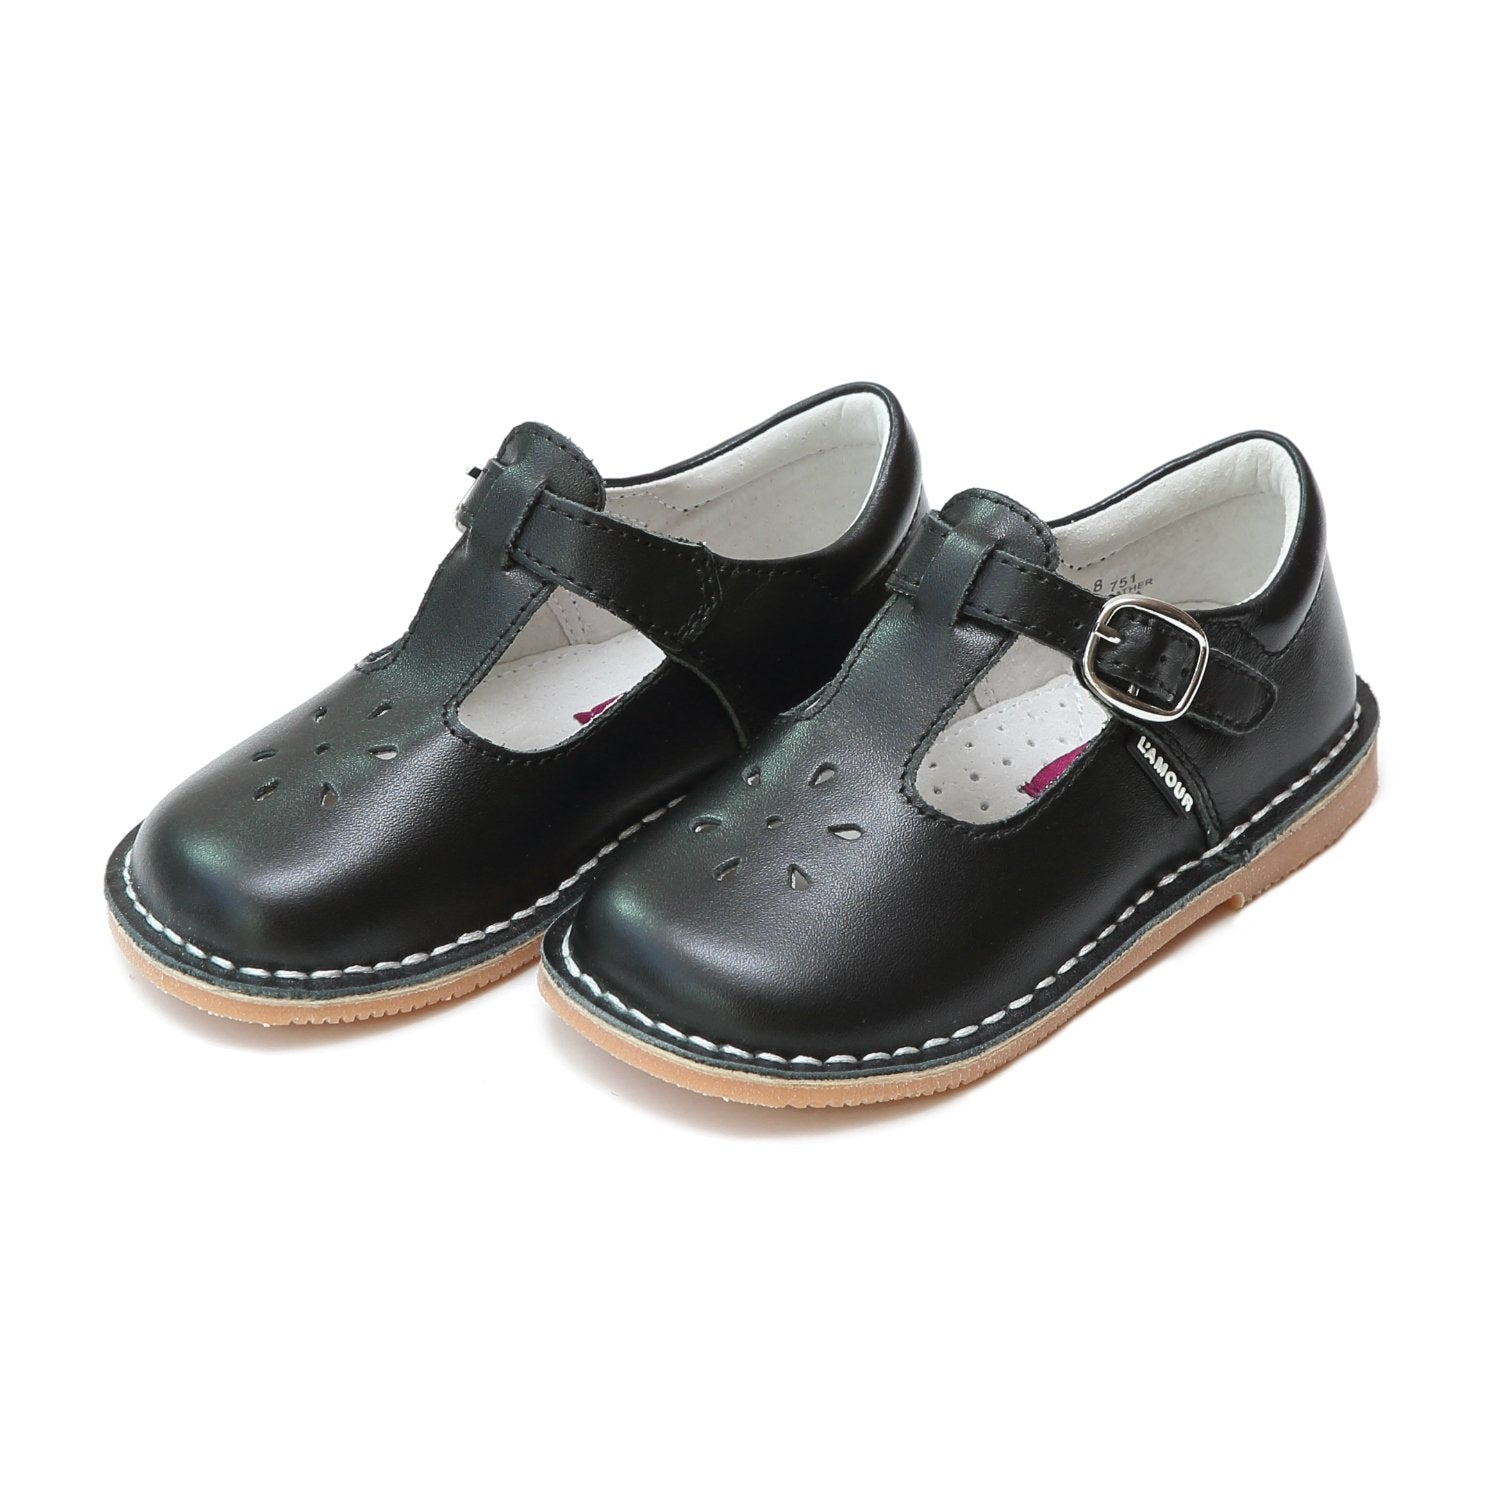 Joy Classic Leather Stitch Down T-Strap Mary Jane